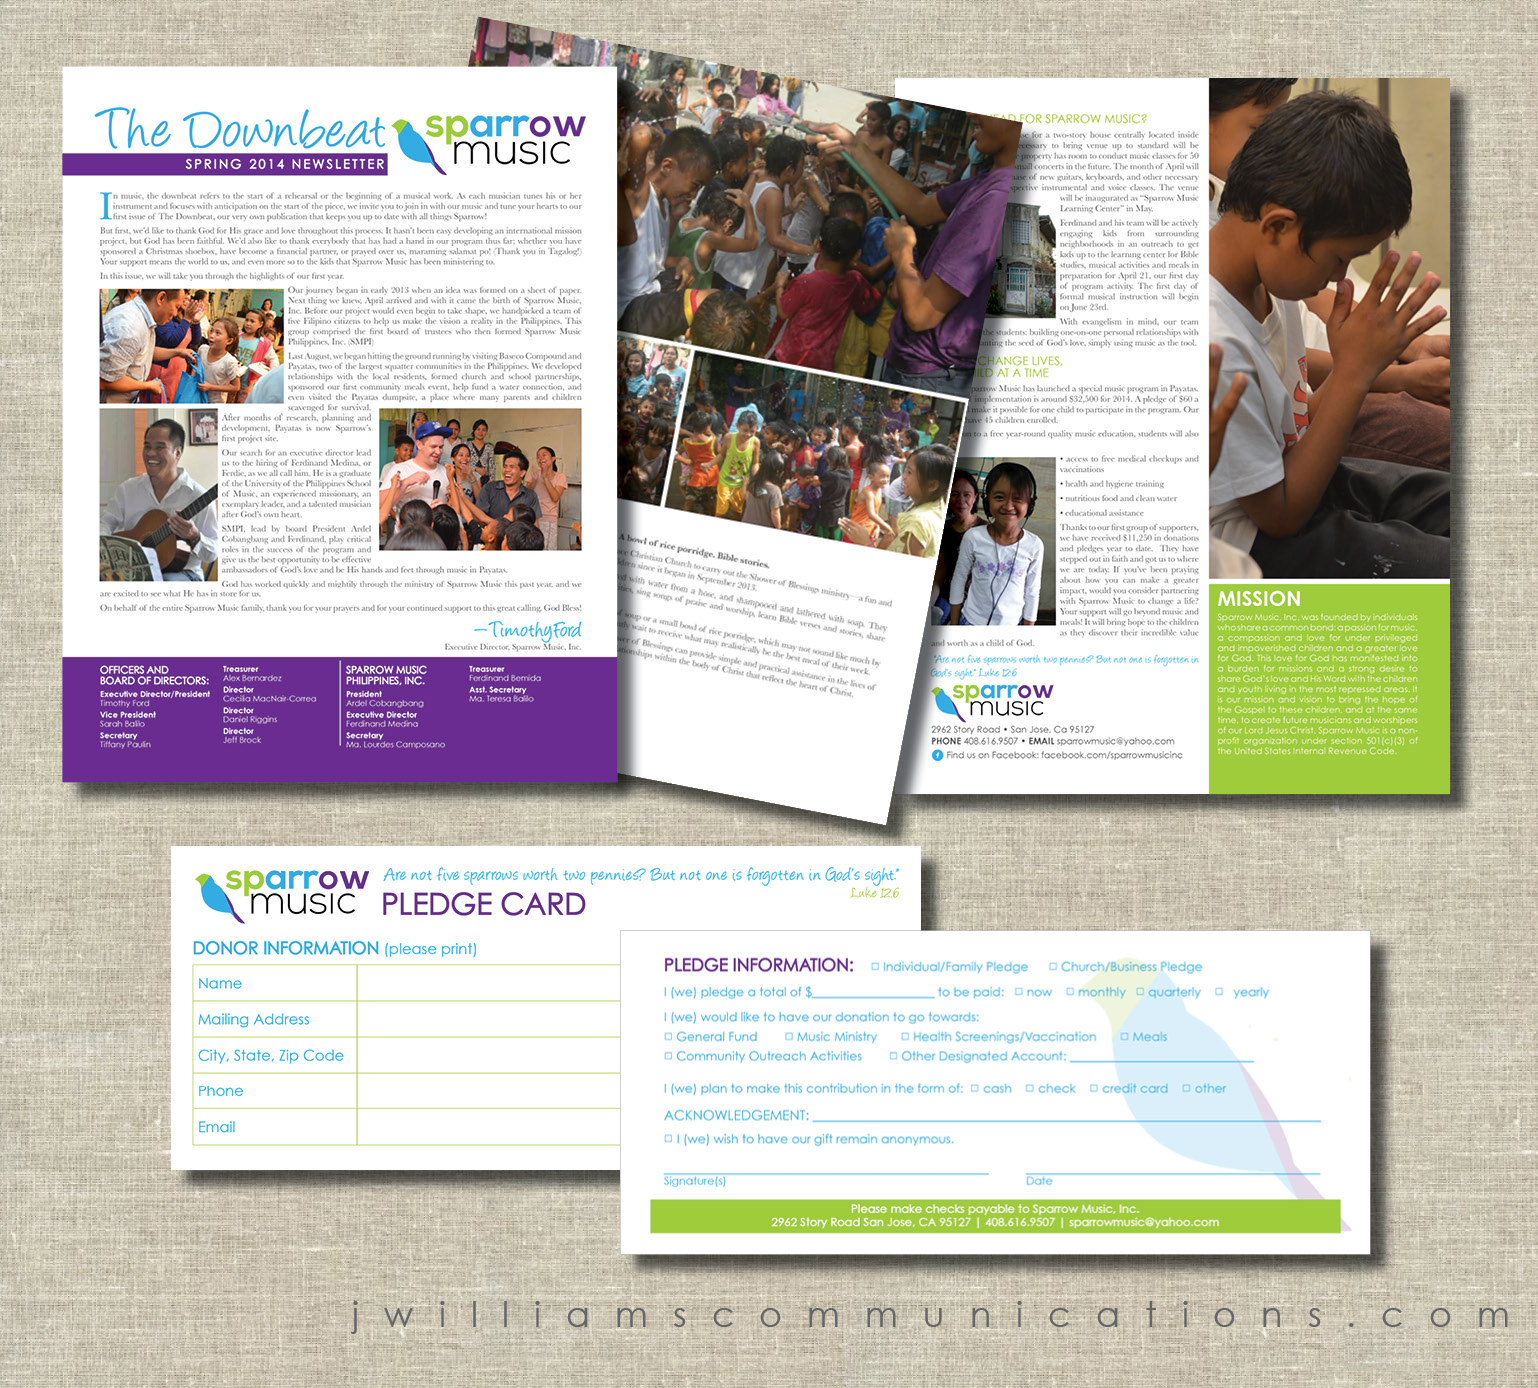 newsletter and pledge card for sparrow music graphic design samples.jpg